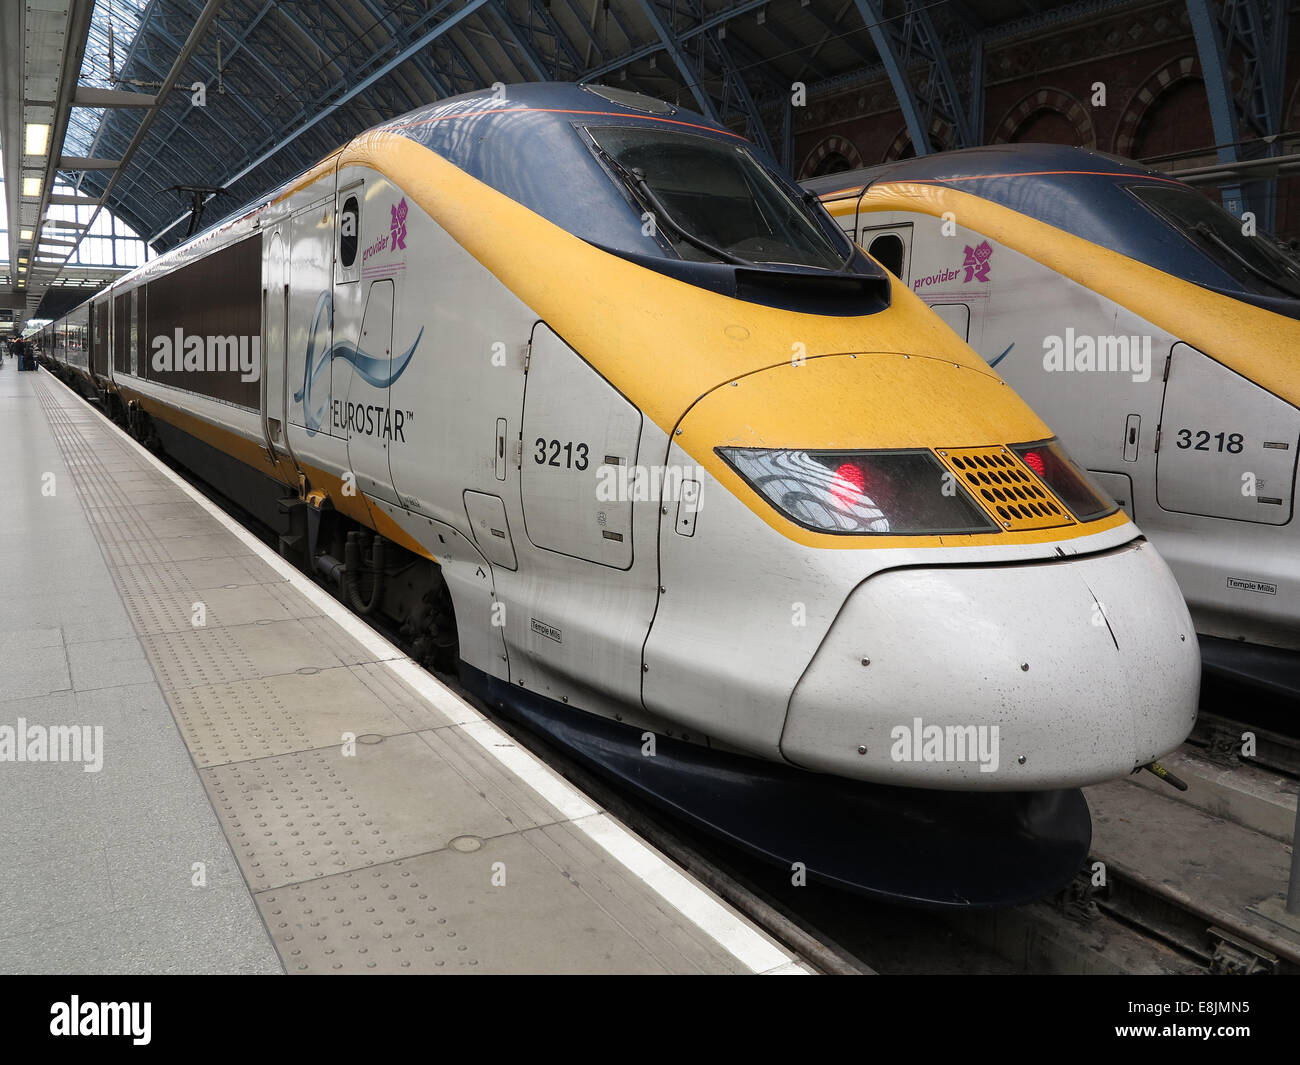 Eurostar trains in St Pancras's station - Stock Image